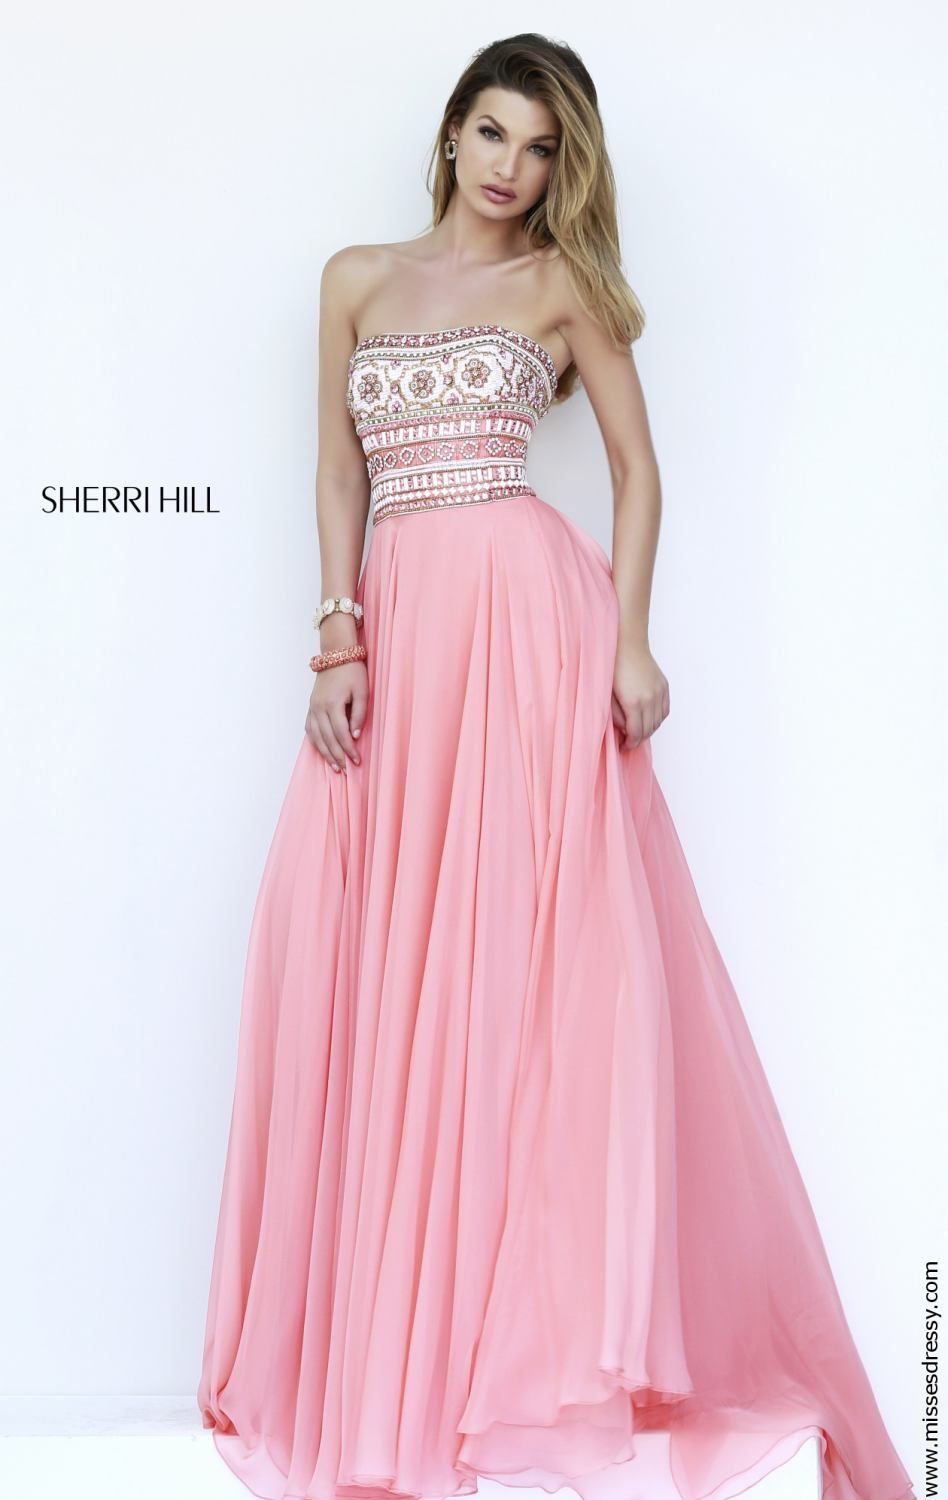 Sherri Hill 11175 Dress - MissesDressy.com | VESTIDOS DE FESTA ...